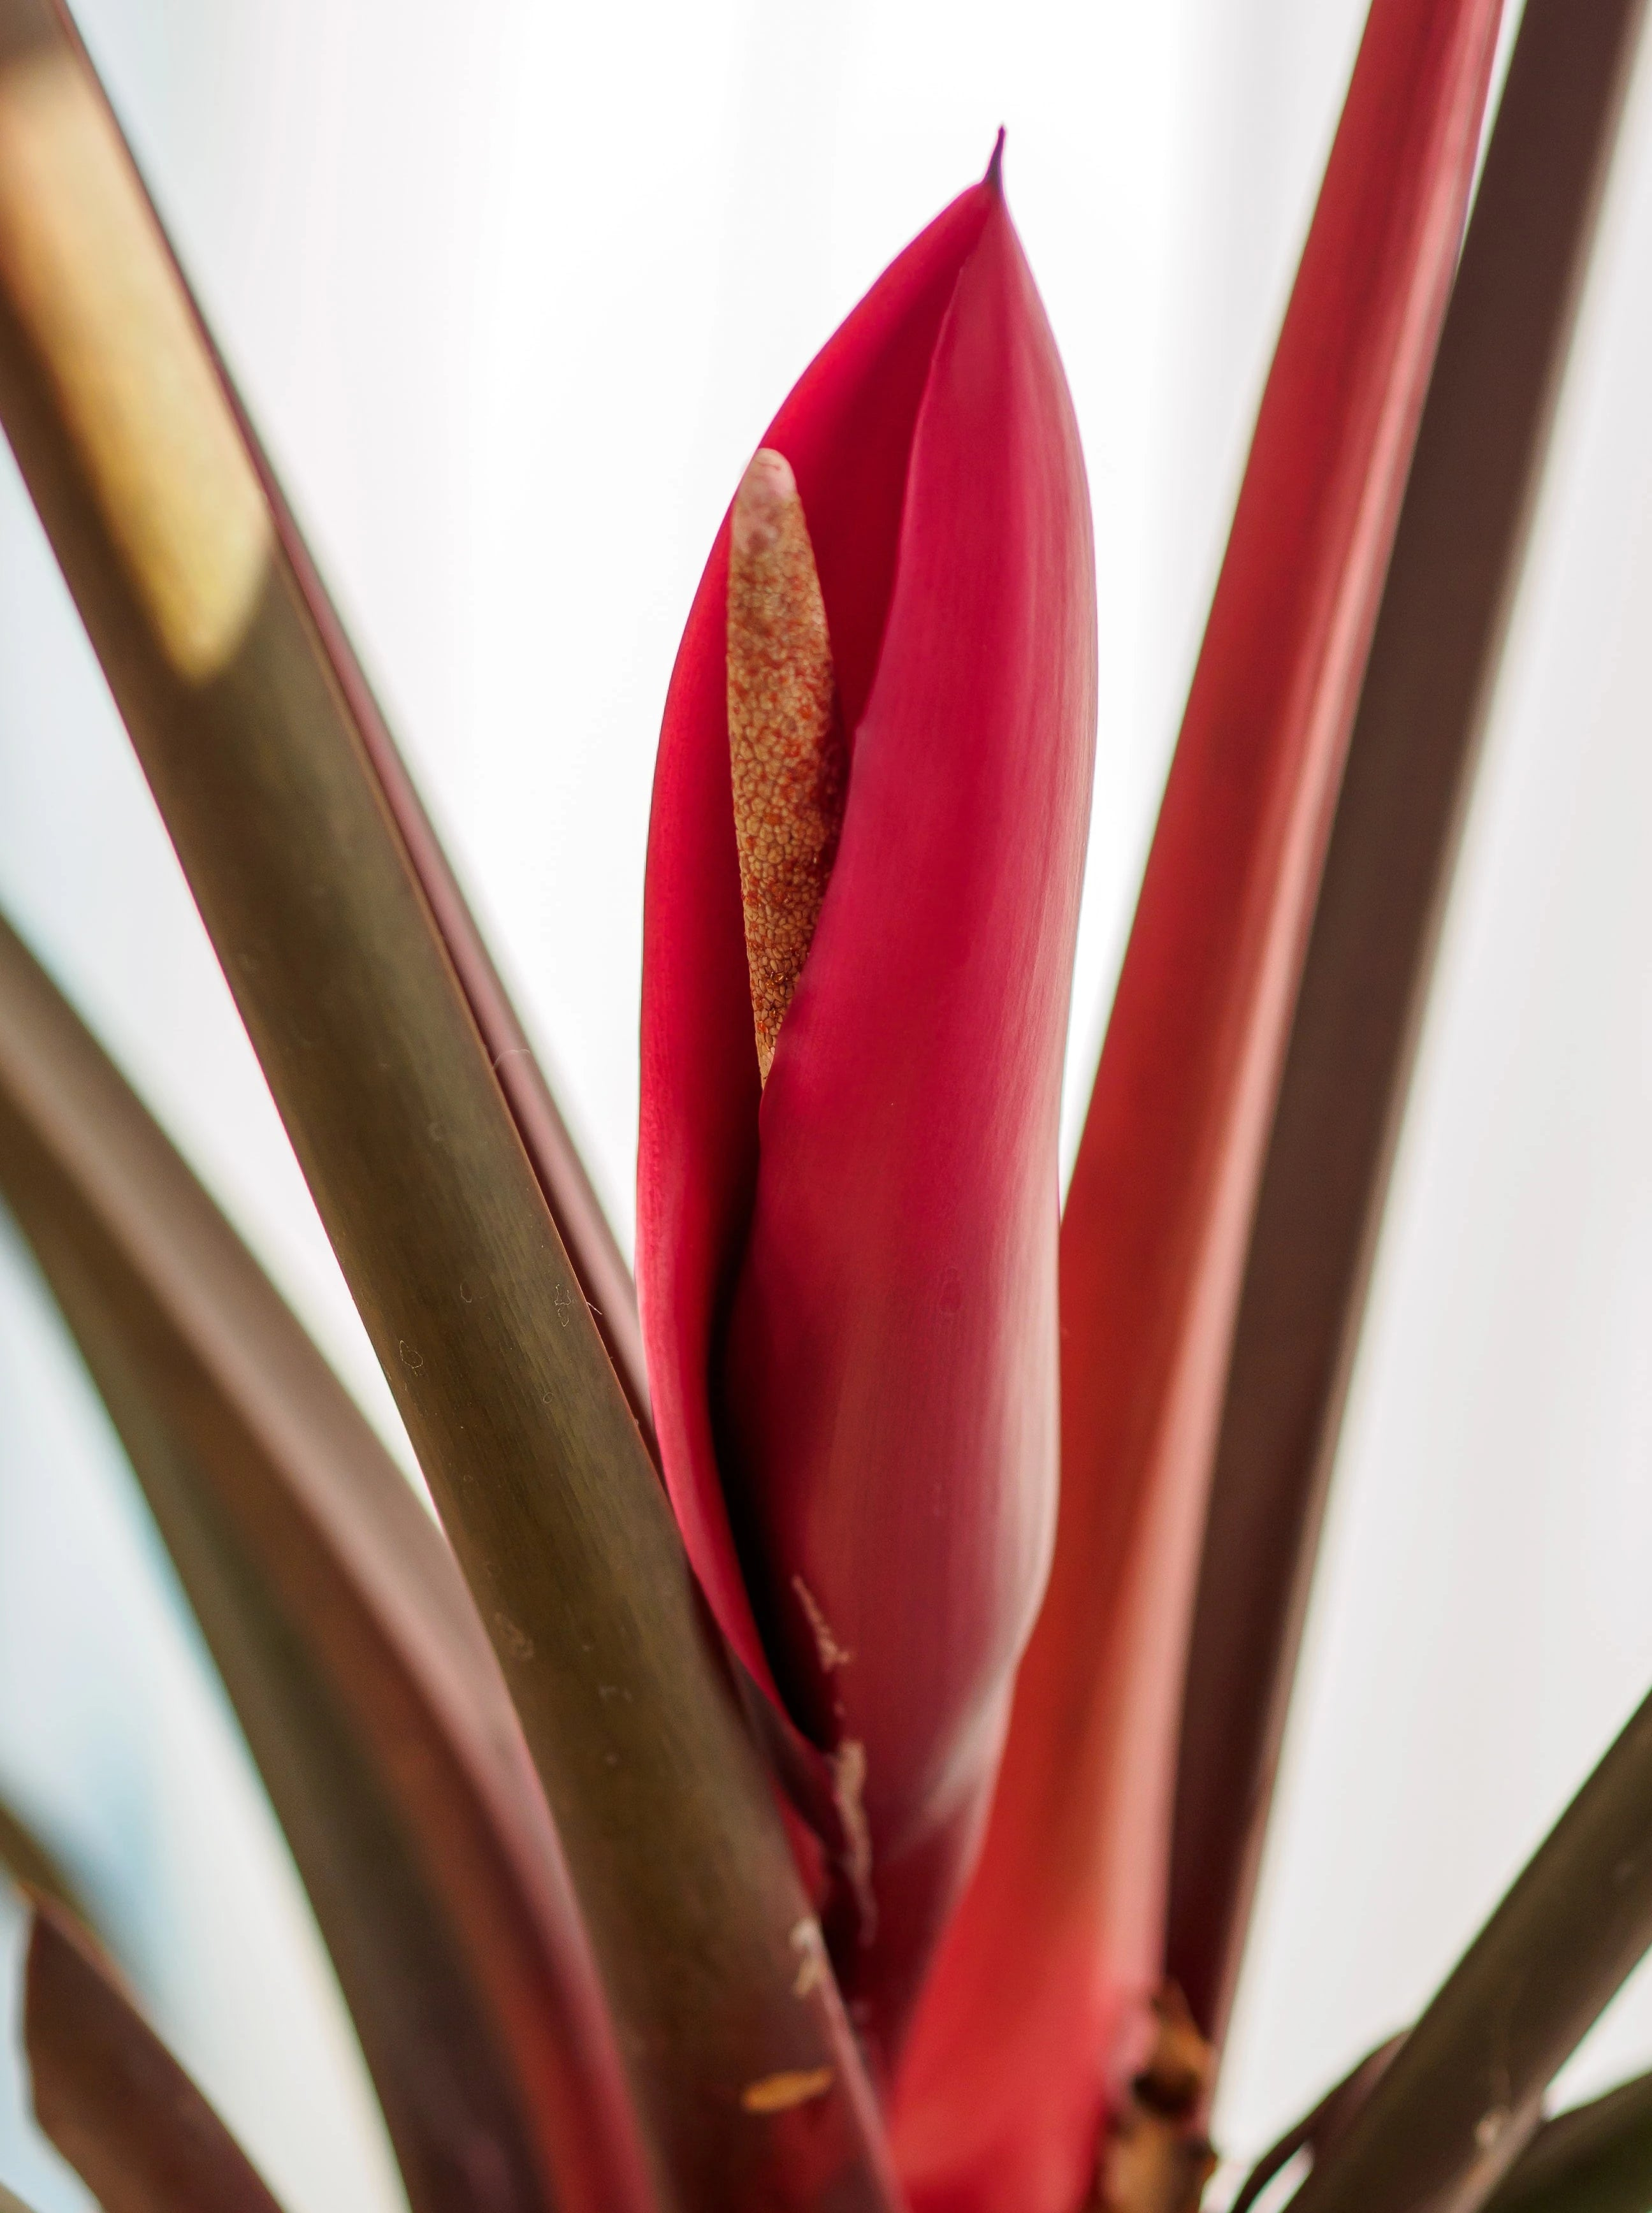 Dunkelrote Philodendron-Blüte